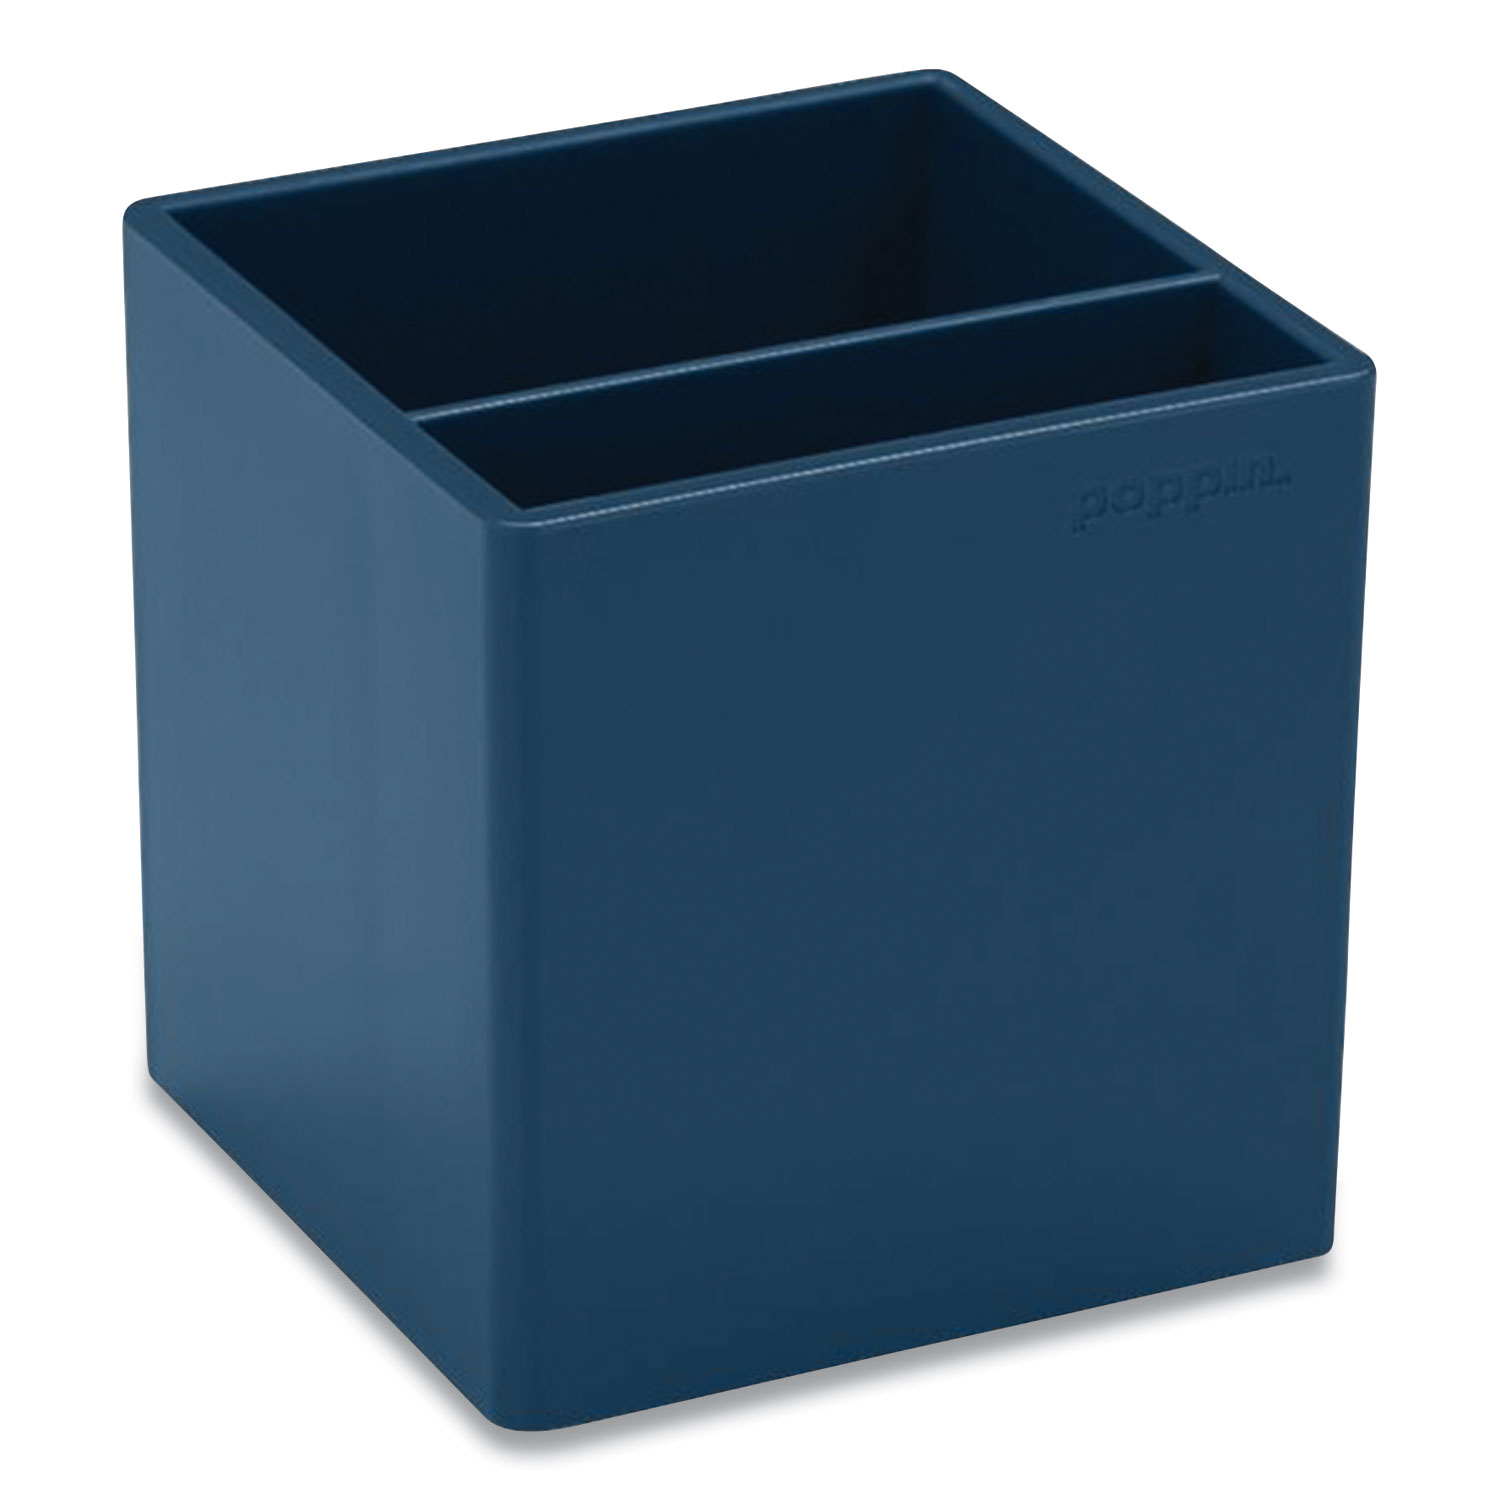 Picture of Pen Cup, 3.25 x 3.25 x 3.25, Plastic, Slate Blue